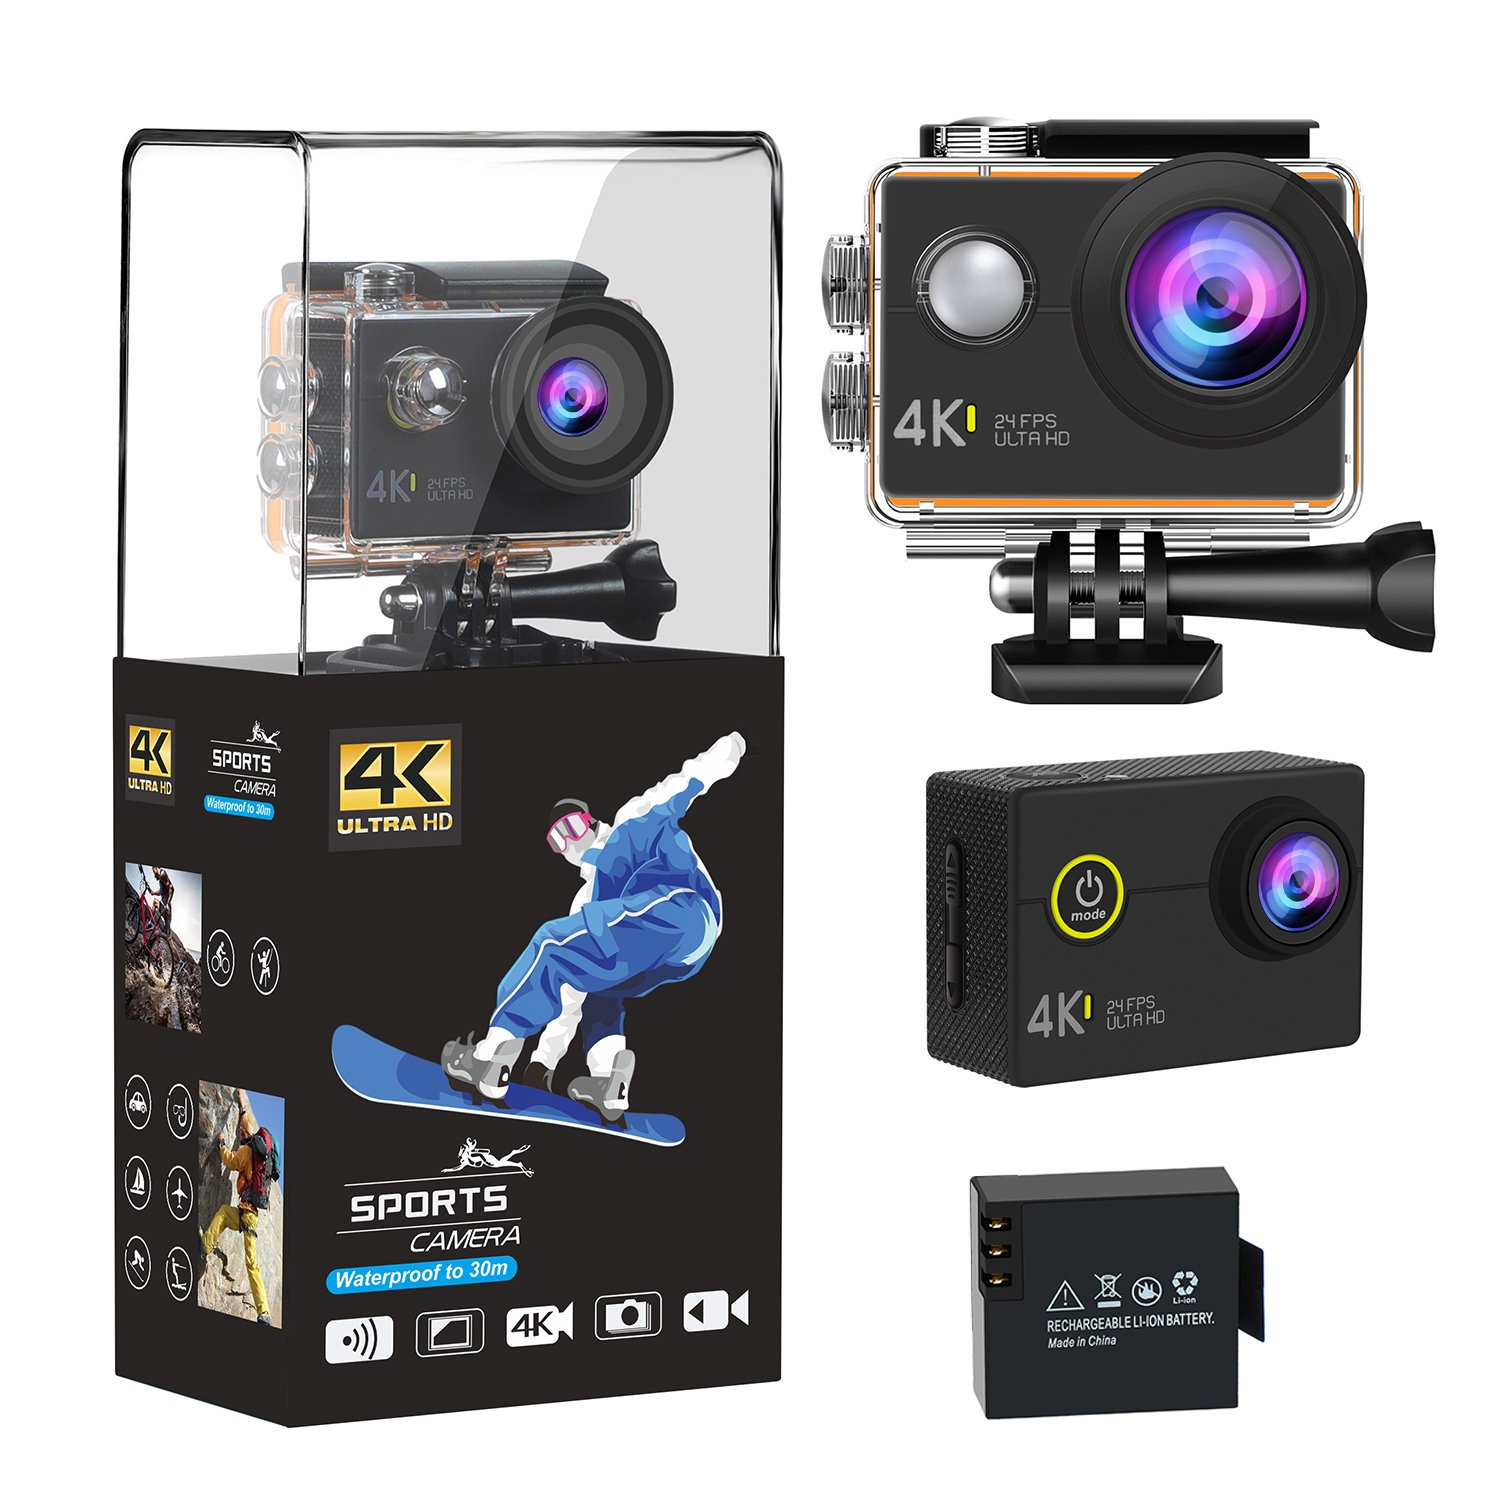 4K WIFI Action Camera, Gangdise 16MP Ultra HD Waterproof Sports Camera with 170 Degree Wide Angle Lens 2 Inch LCD Display, 1050mAh Rechargeable Battery Camcorder Sports Camera